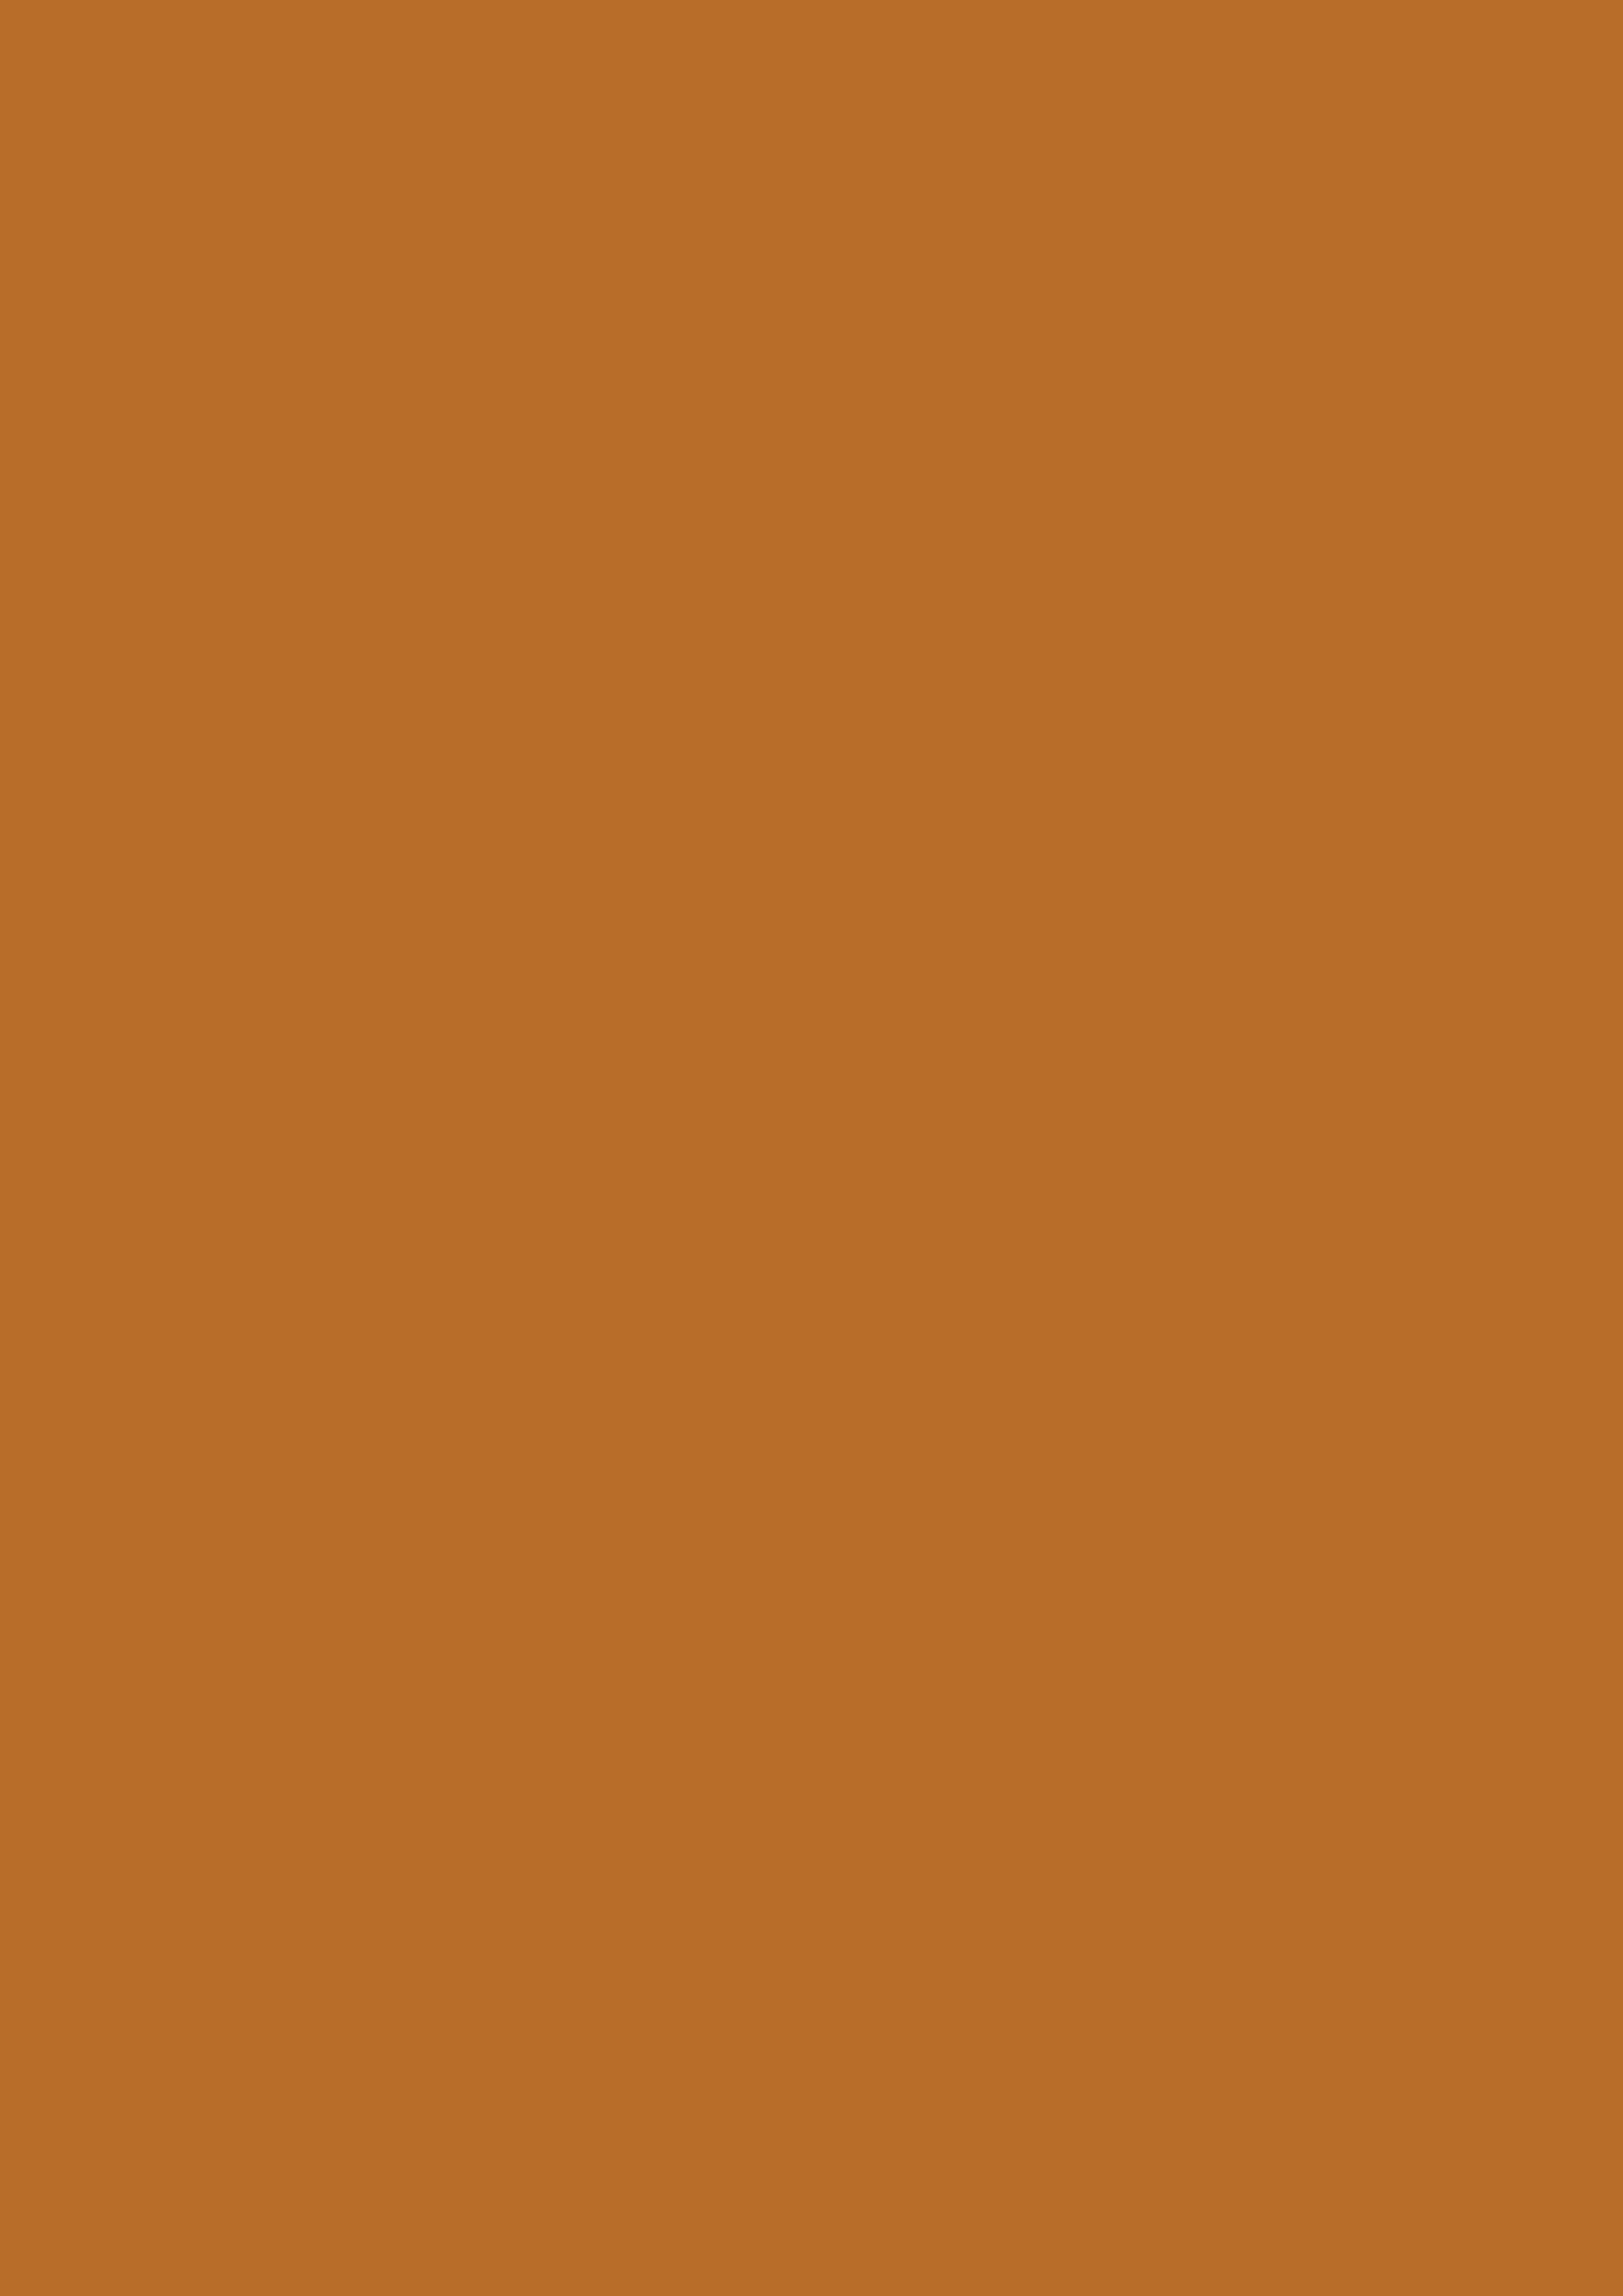 2480x3508 Liver Dogs Solid Color Background